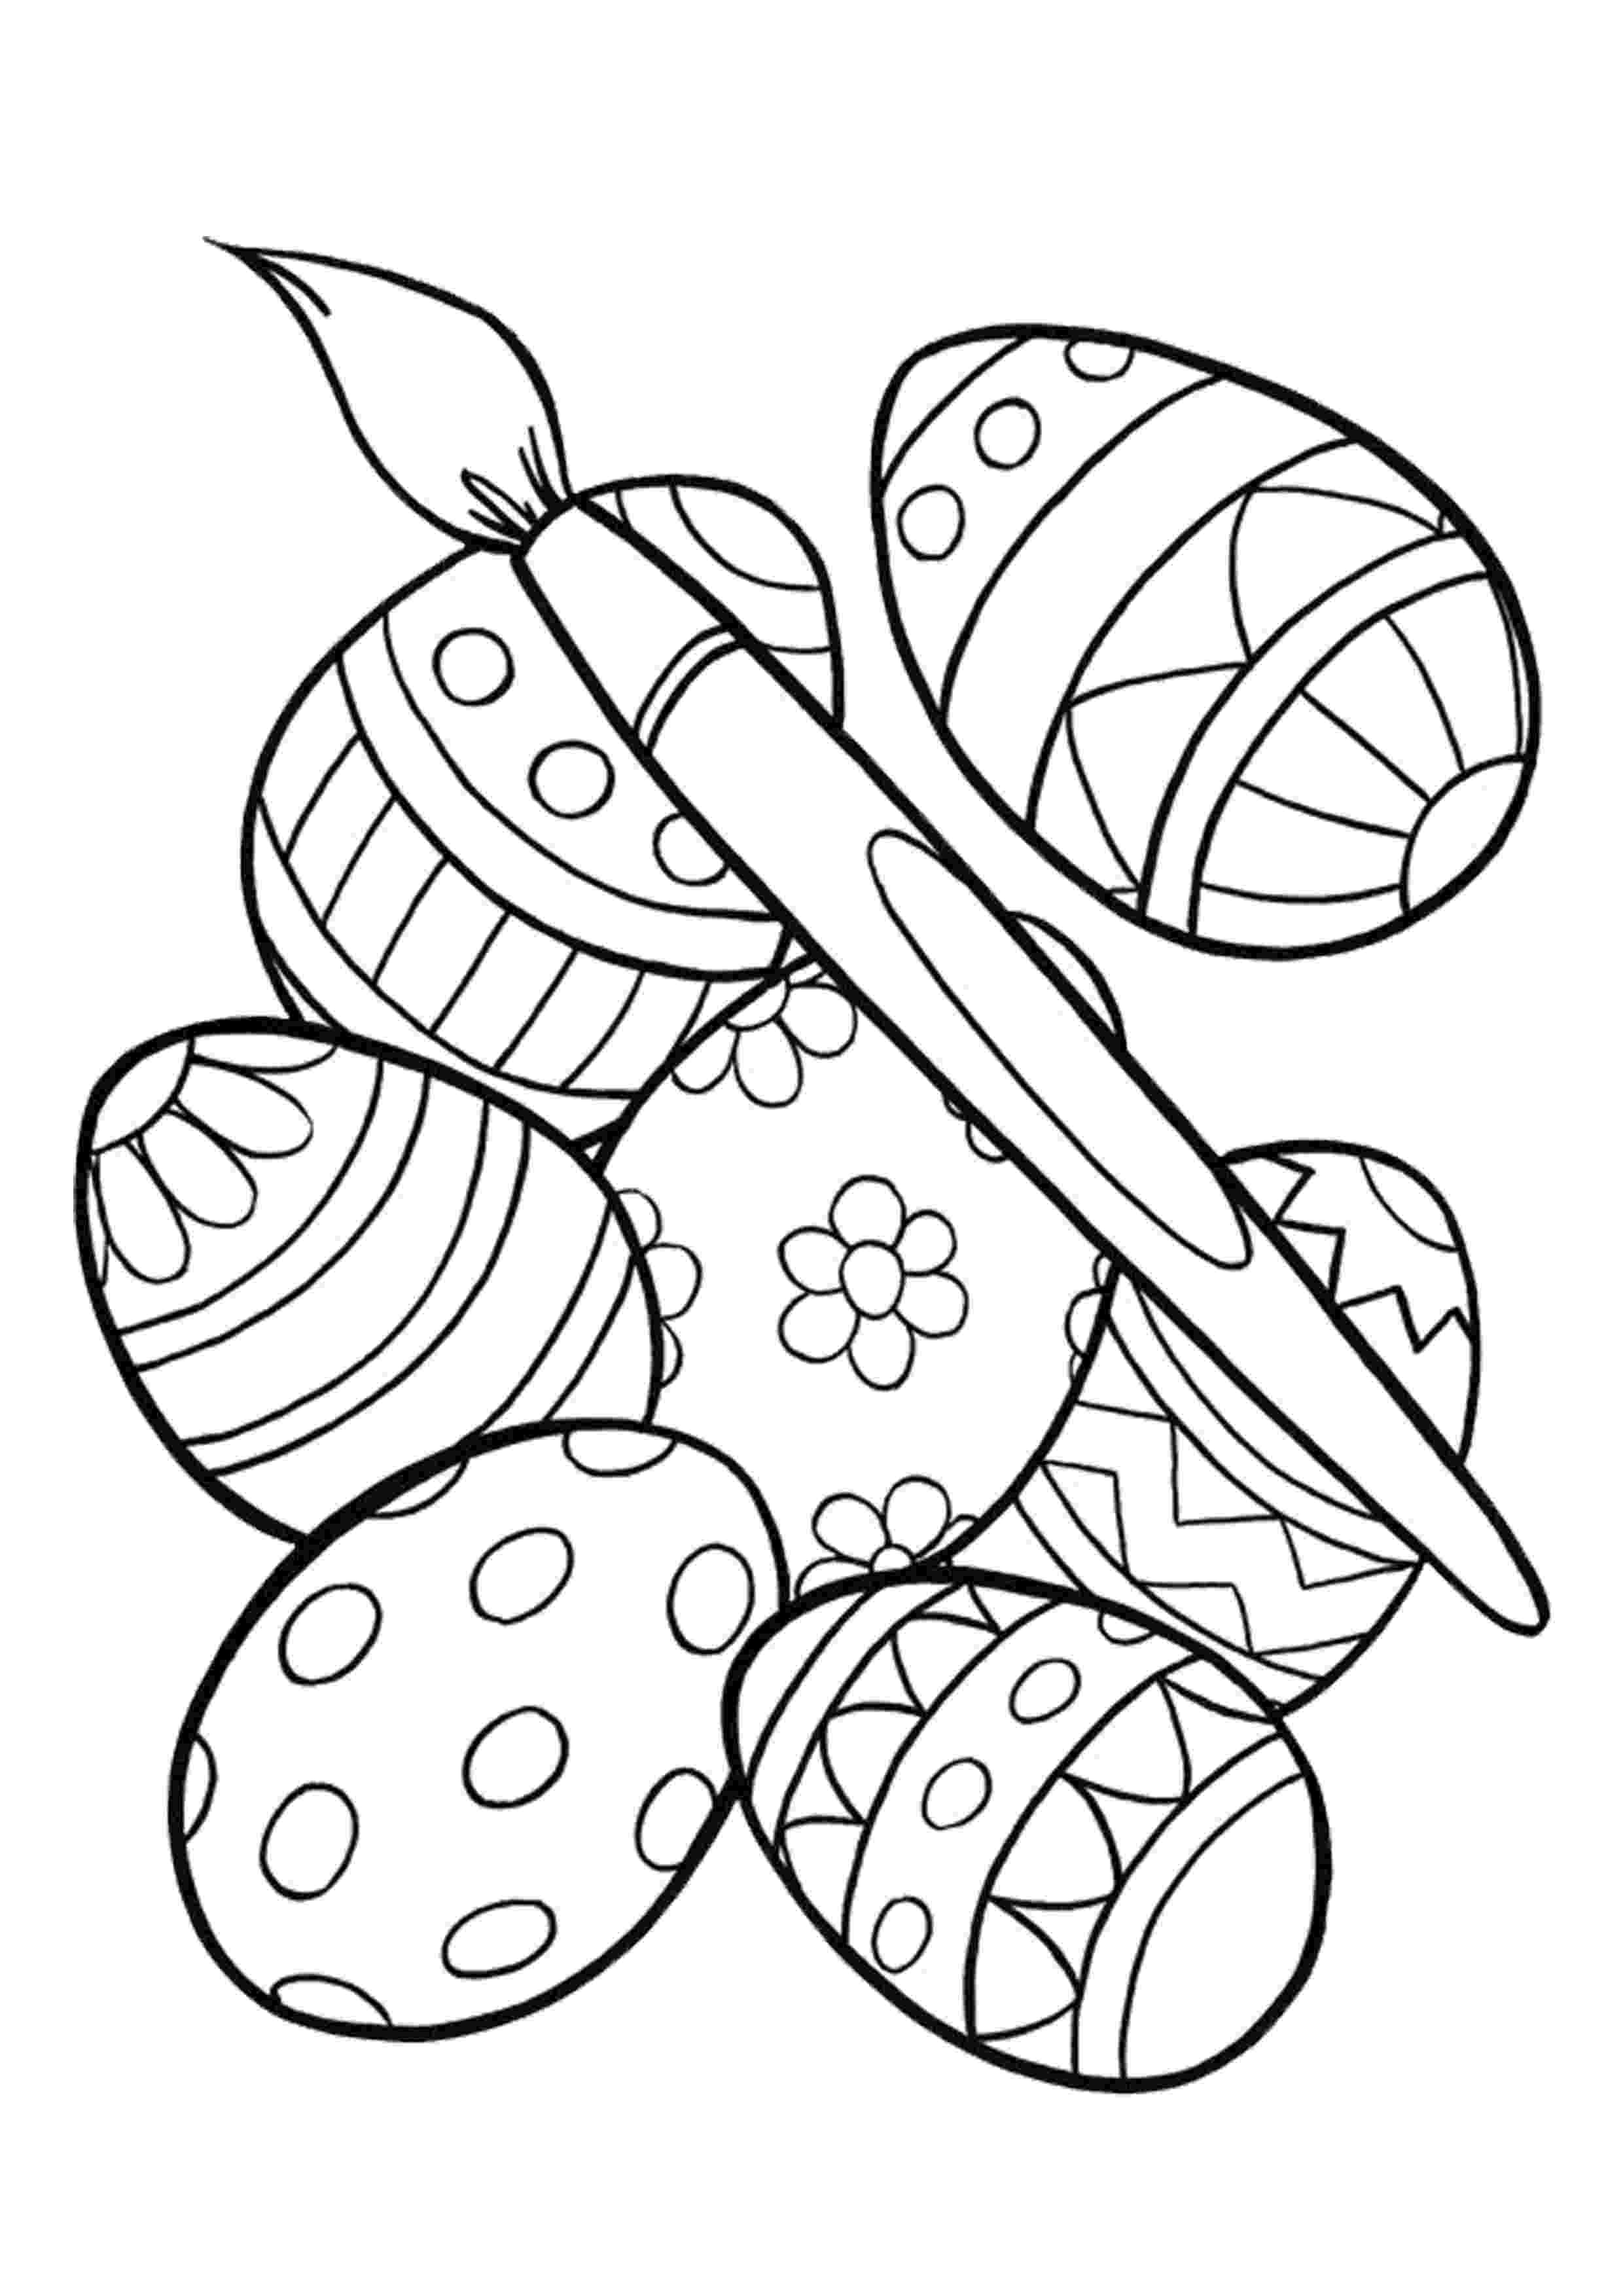 printable colouring sheets for easter easter coloring sheets 2018 dr odd colouring sheets printable for easter